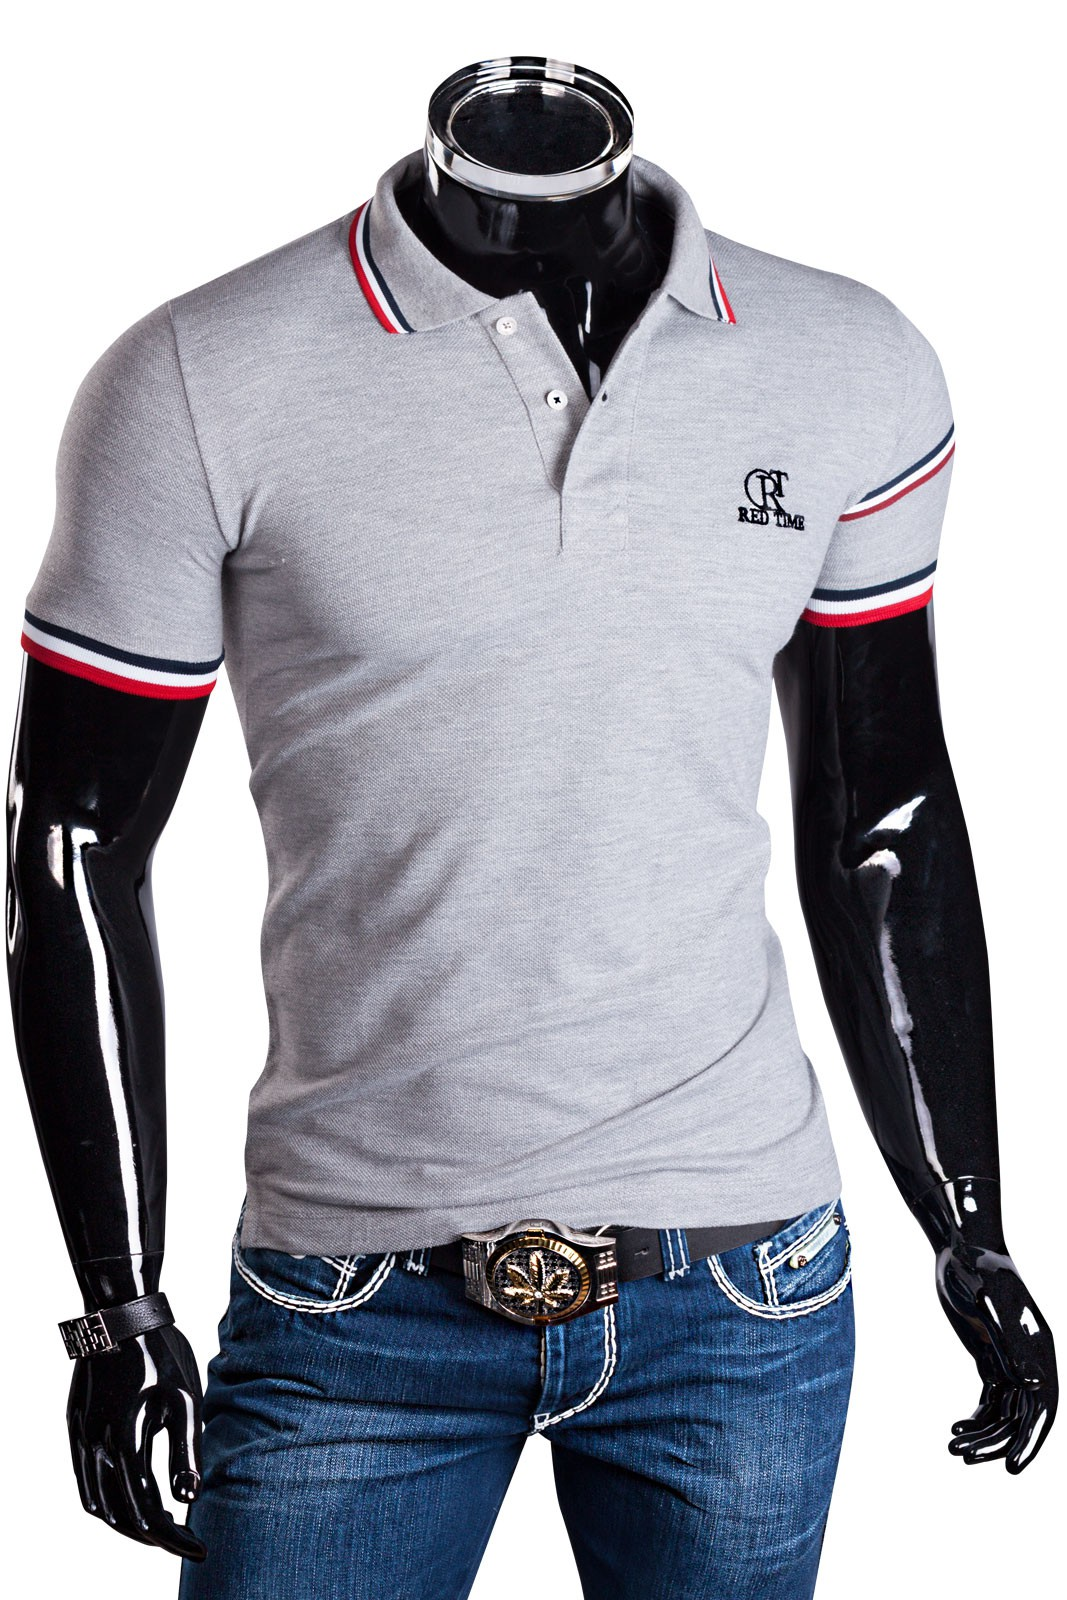 herren poloshirt t shirt monaco party sommer hemd slim fit. Black Bedroom Furniture Sets. Home Design Ideas